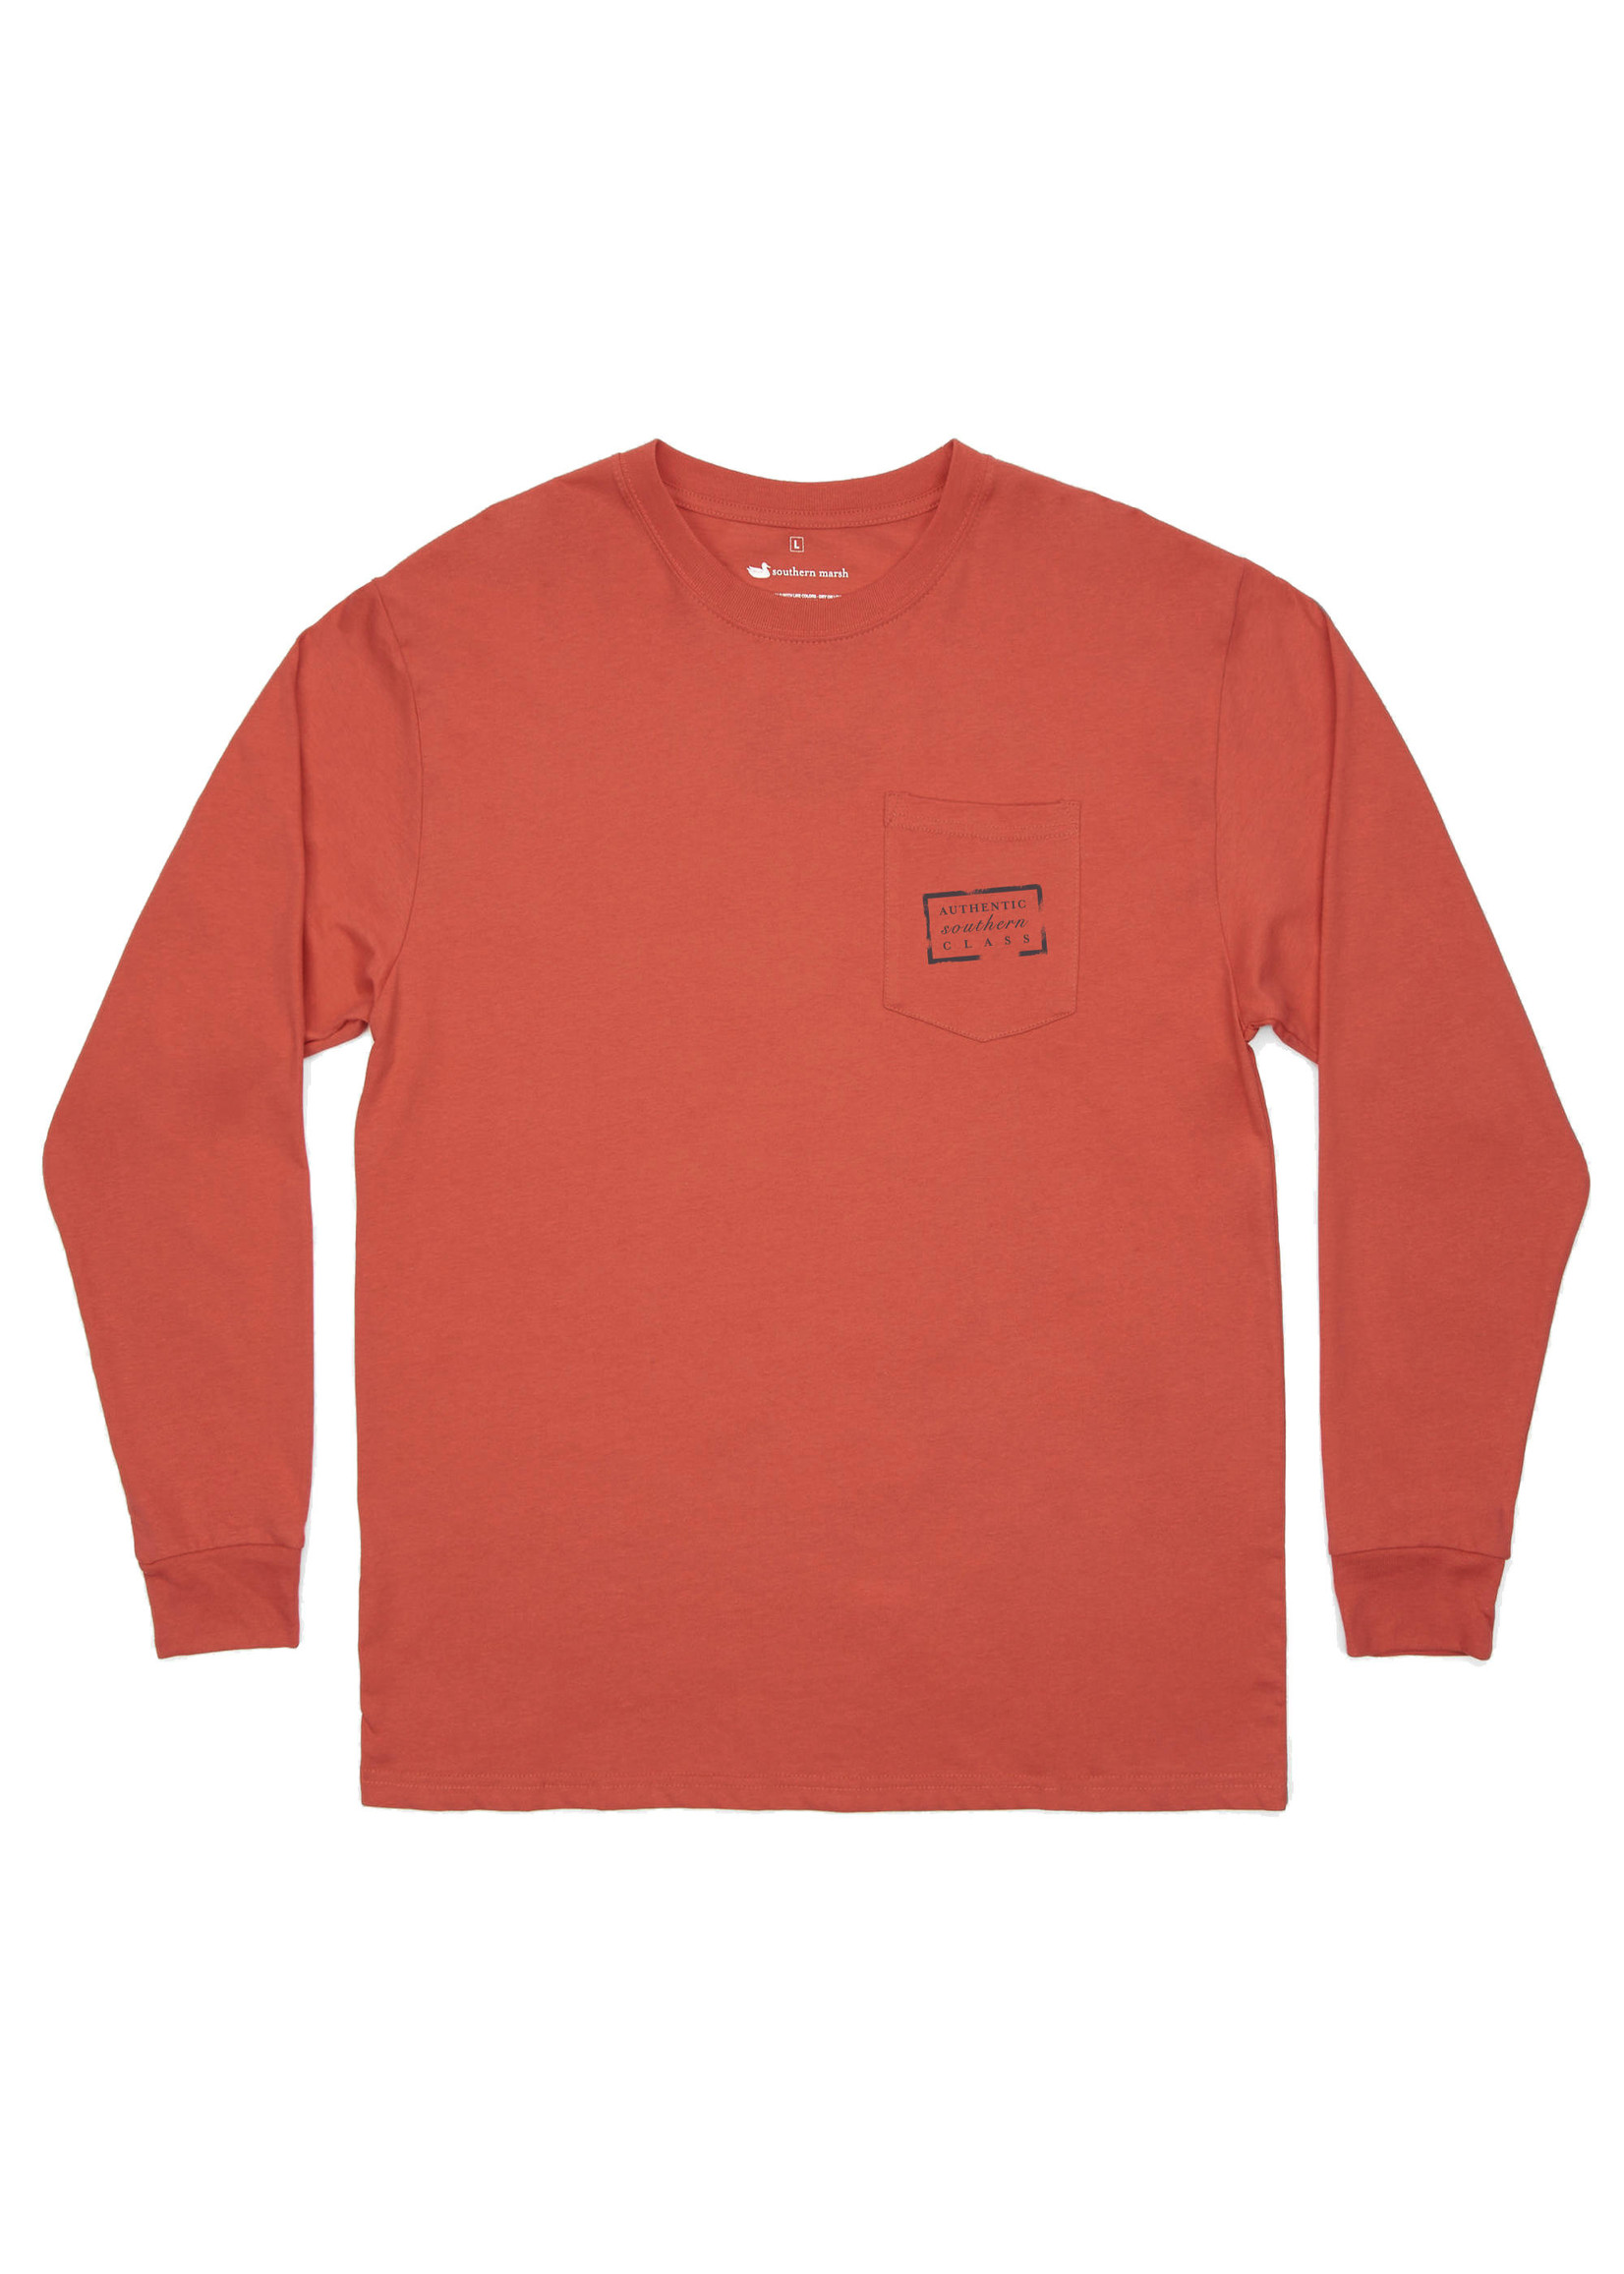 Southern Marsh Authentic Tee - Long Sleeve